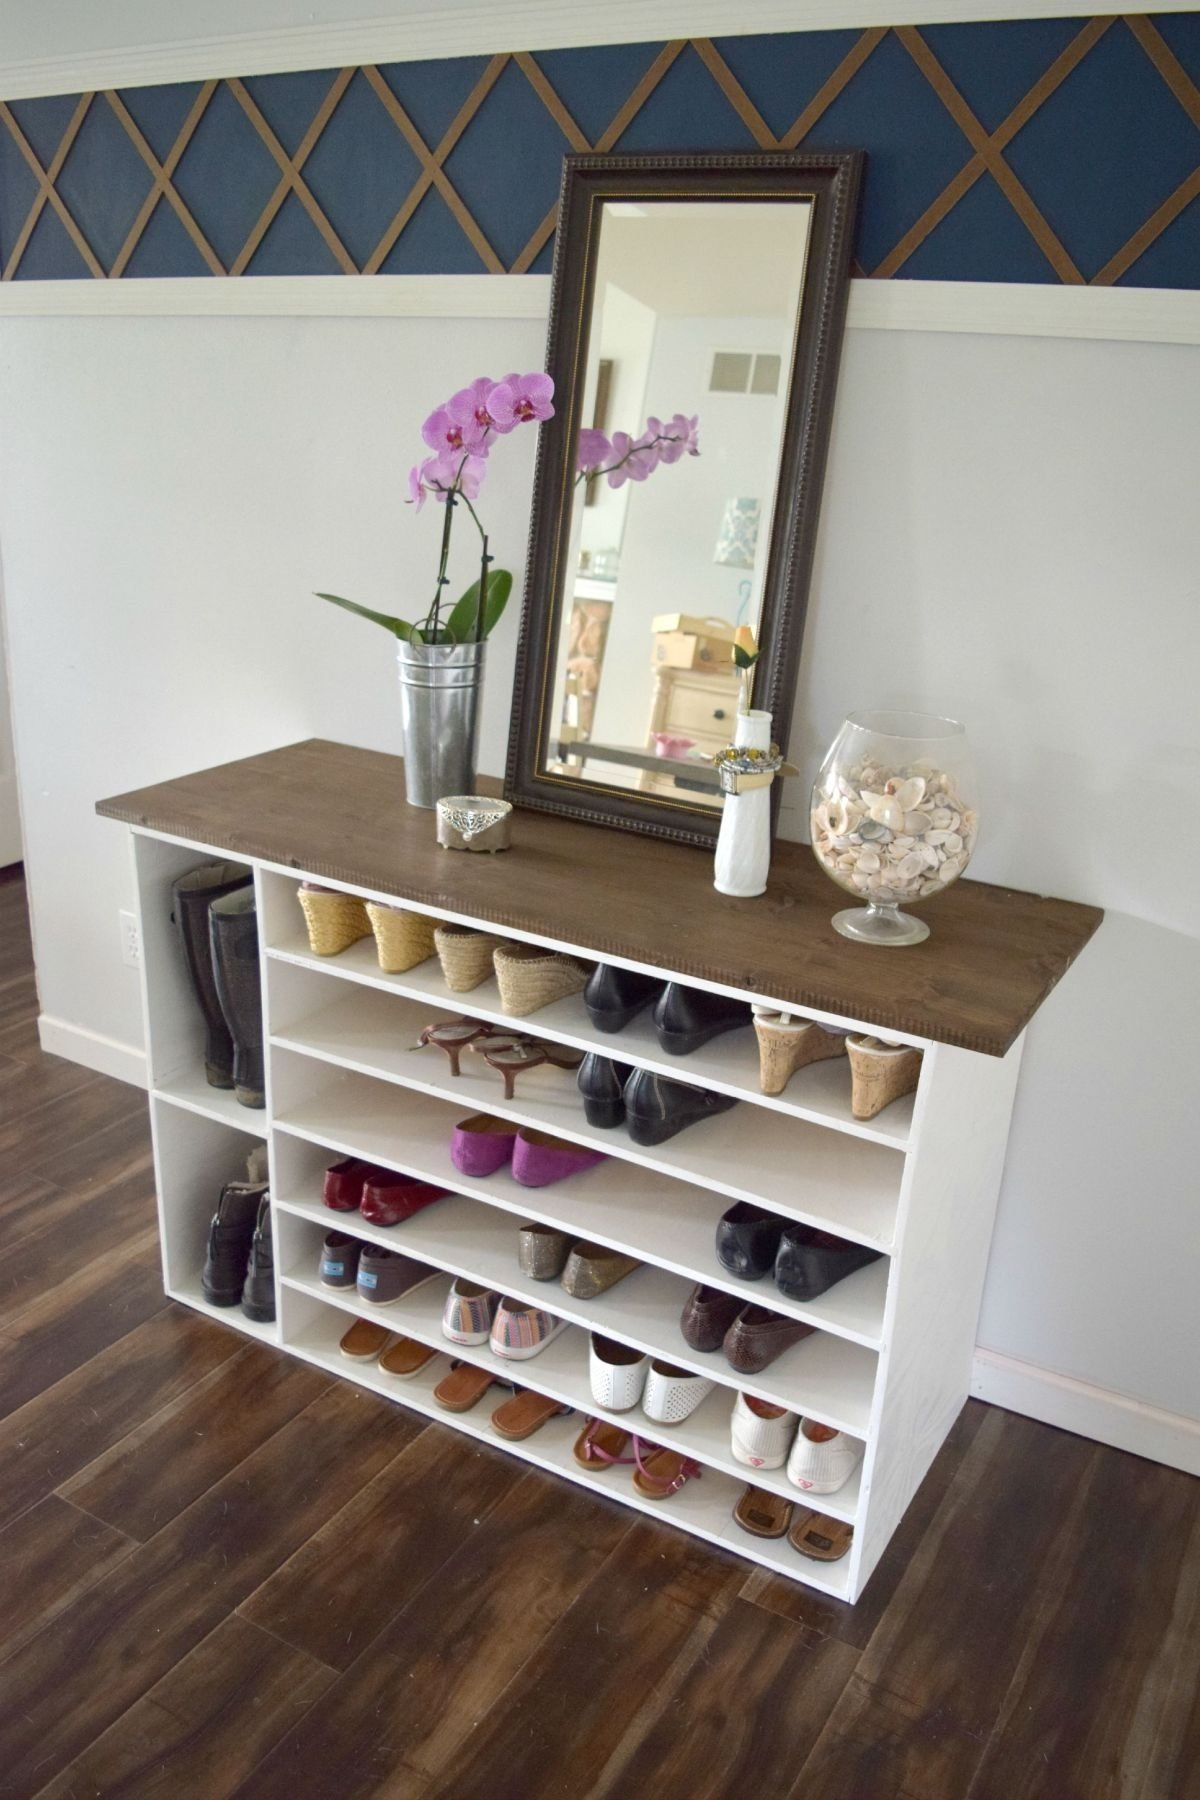 10 Spectacular Shoe Storage Ideas For Entryway how to make a diy shoe organizer and rack for the closet this is 2021